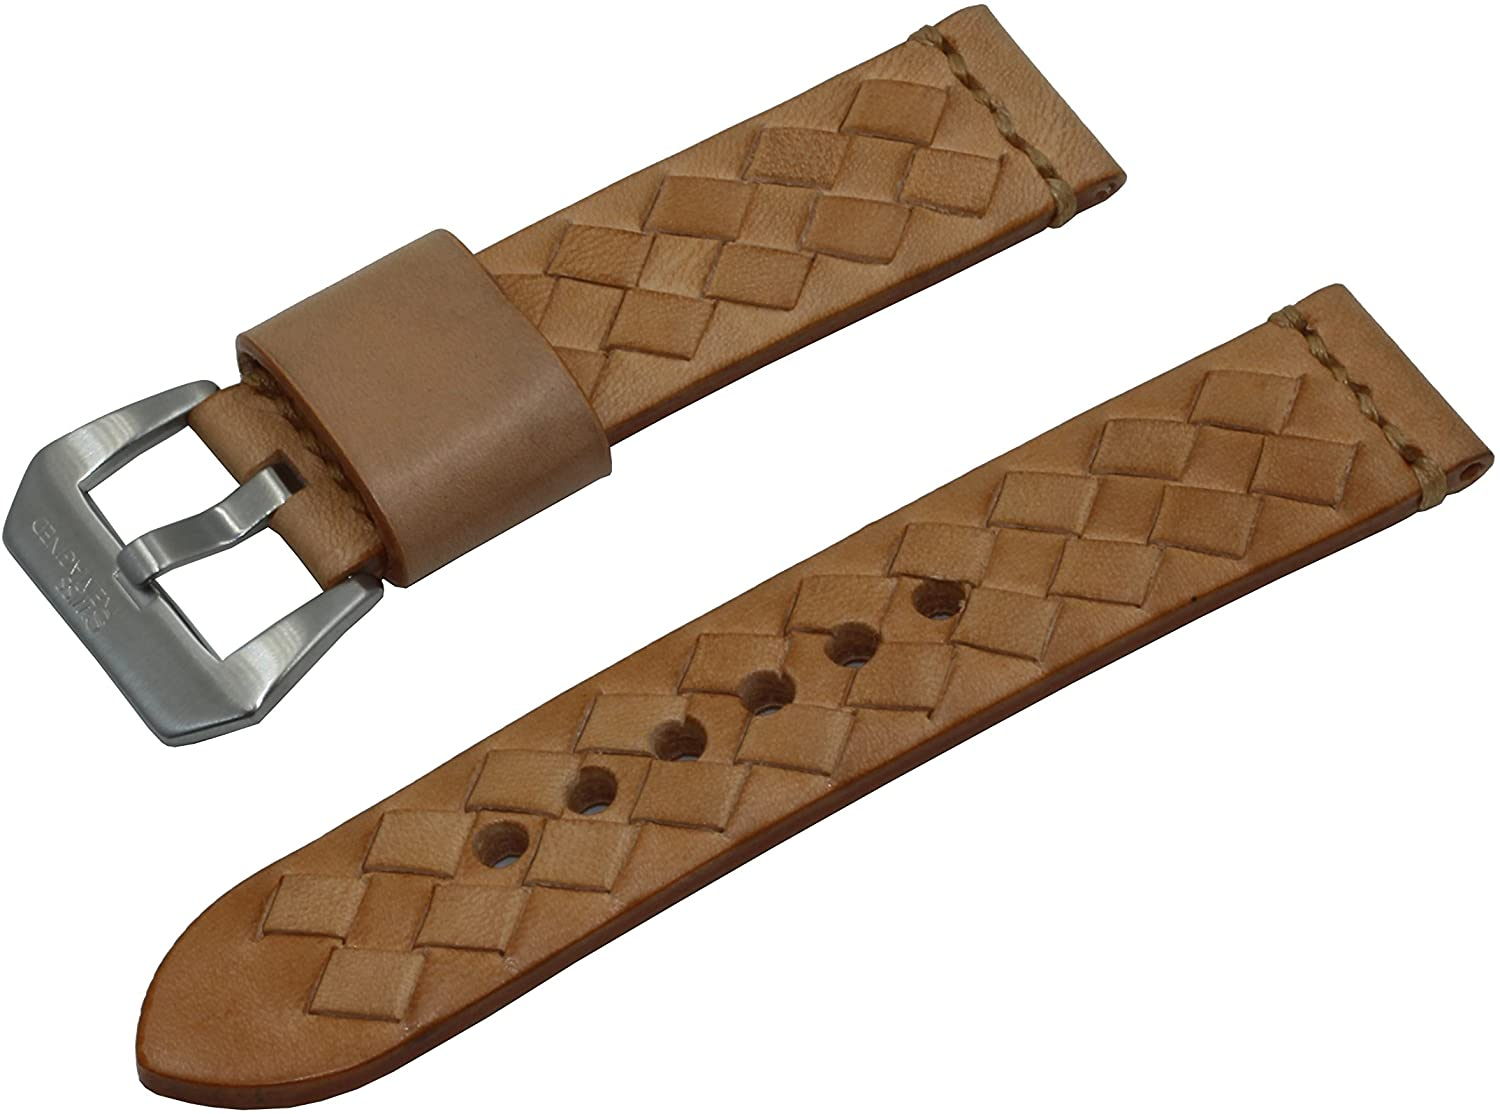 SWISS REIMAGINED Real Leather OLC Replacement Watch Band Strap with Stainless Steel Buckle - Tan, 24mm